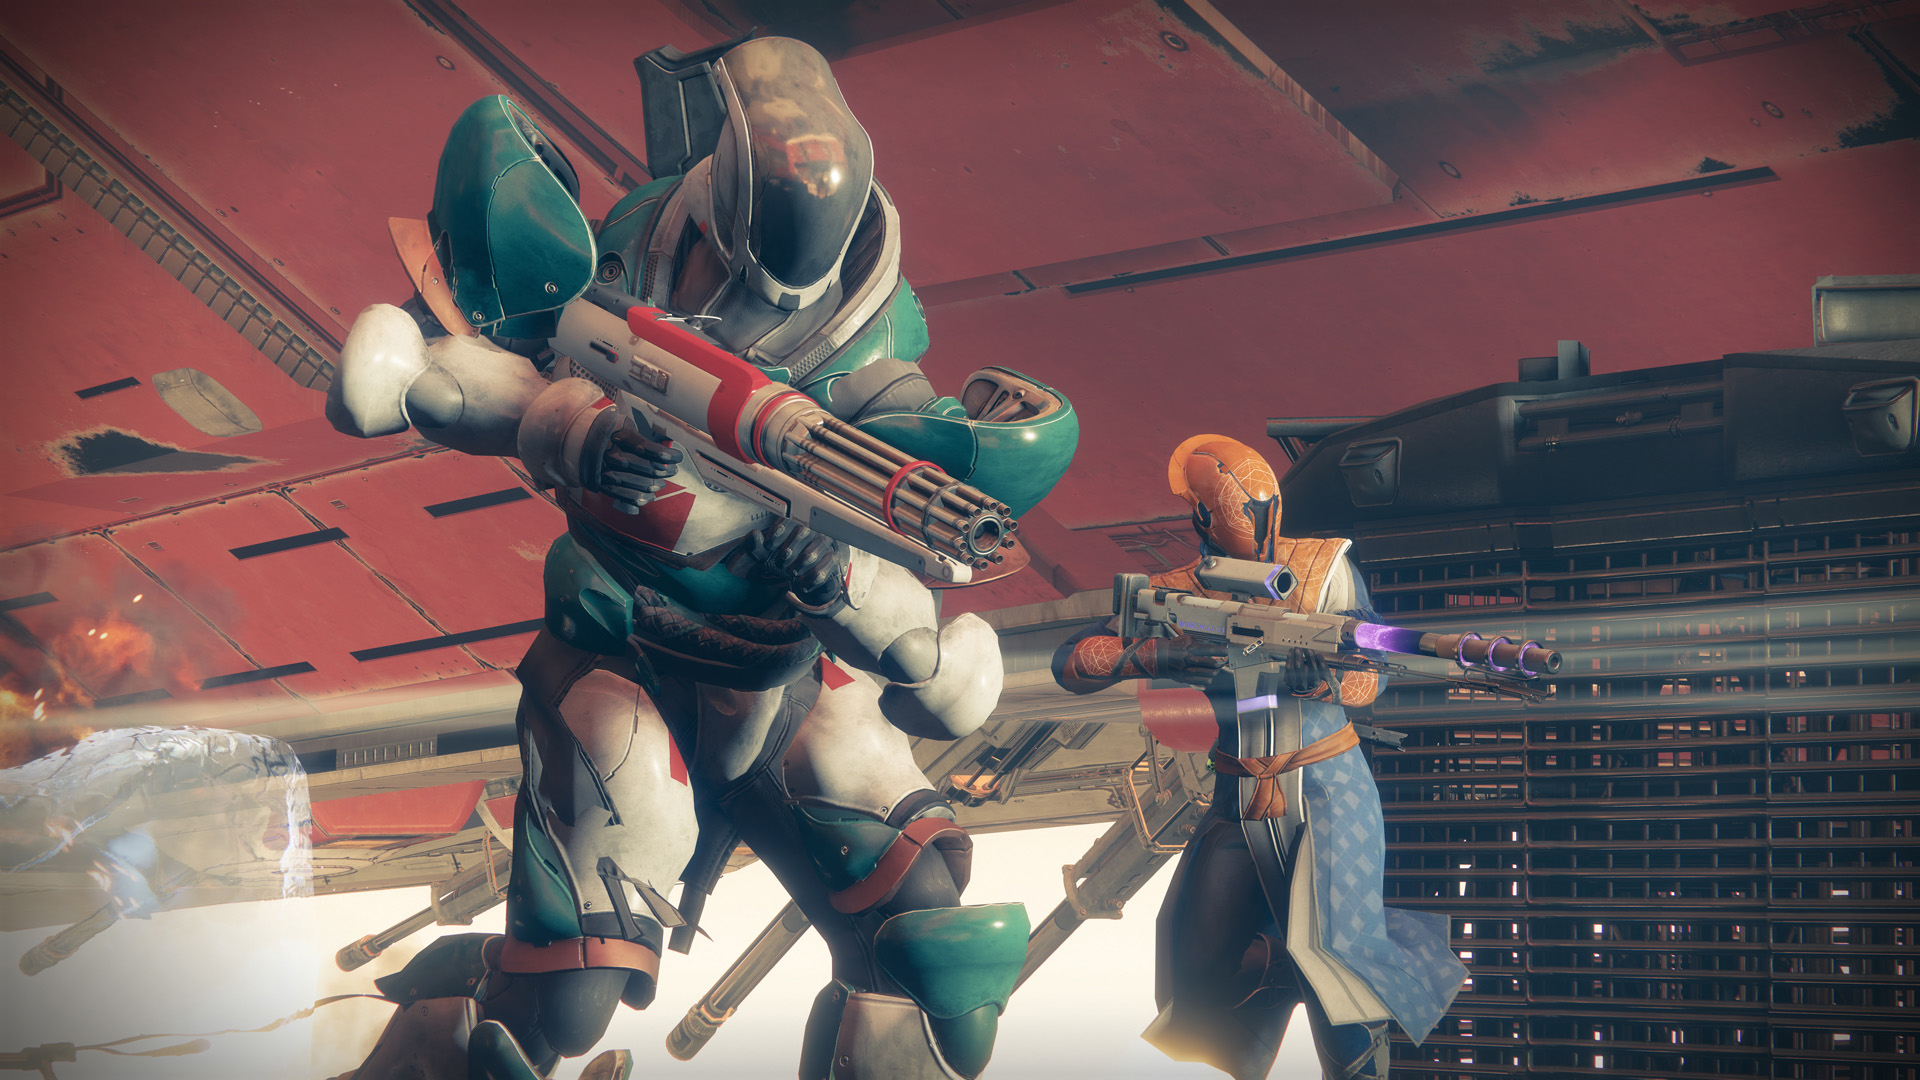 Destiny 2's microtransactions are gross, and totally par for the course